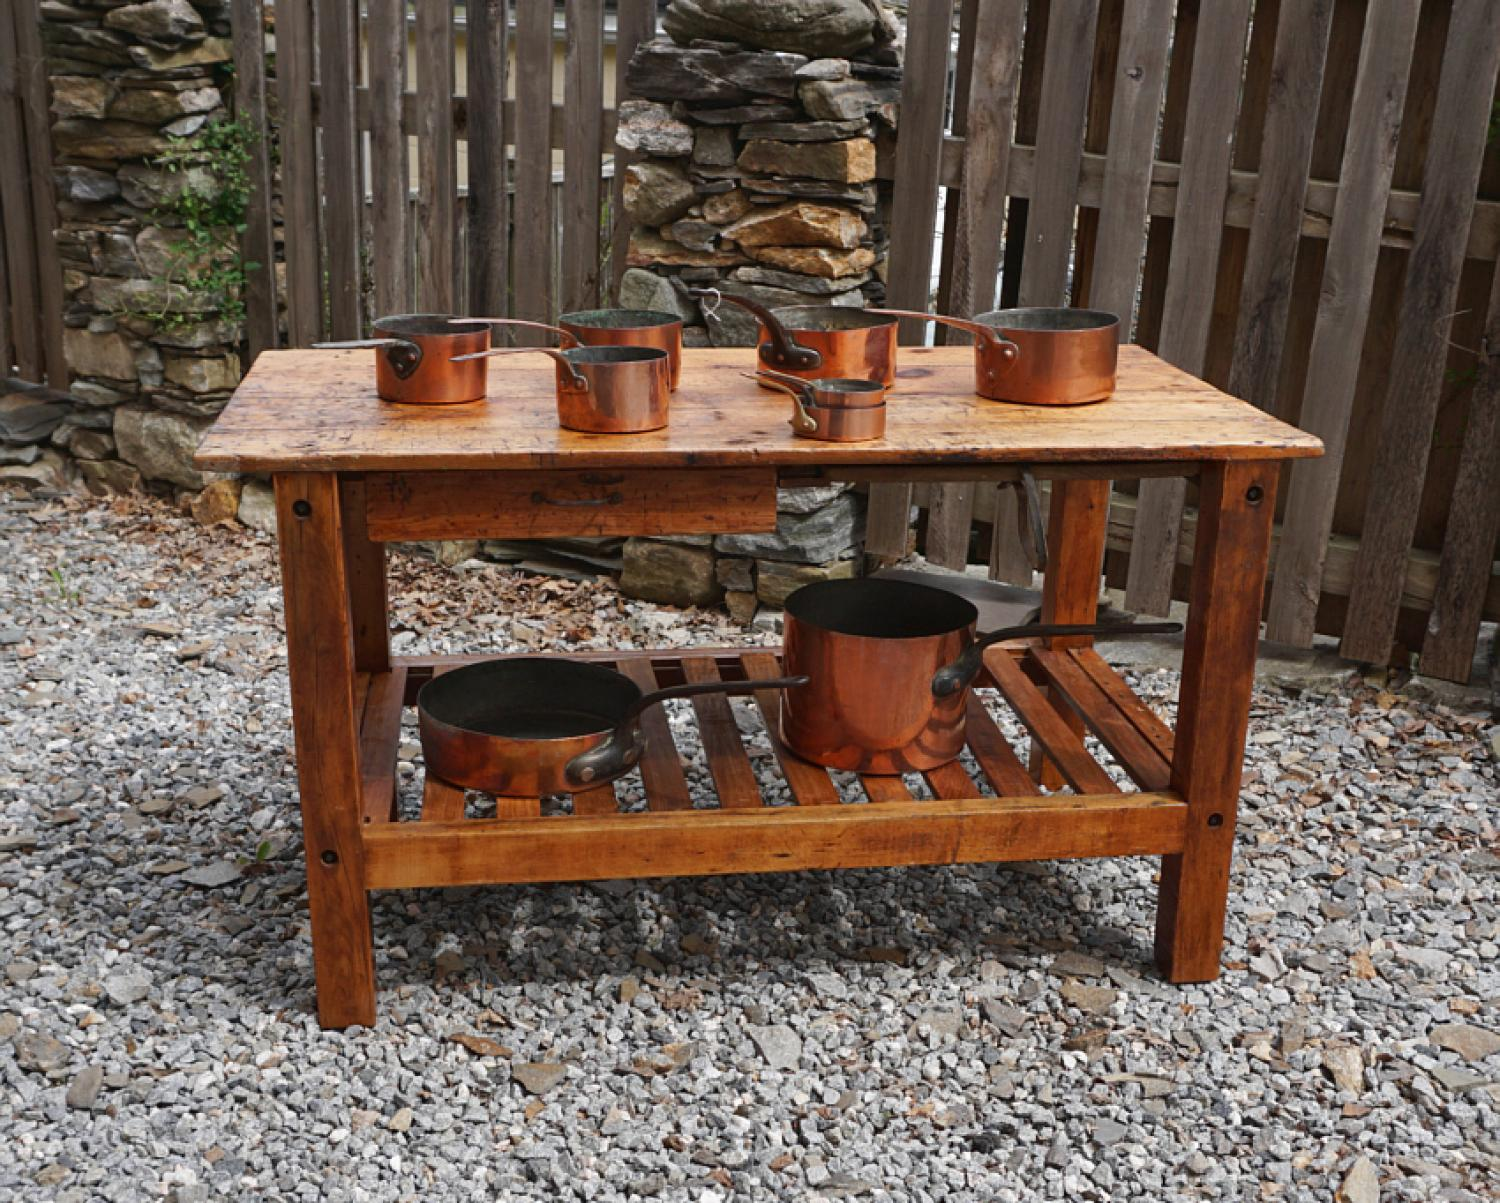 Antique kitchen work table - Antique Kitchen Island Work Table C1840